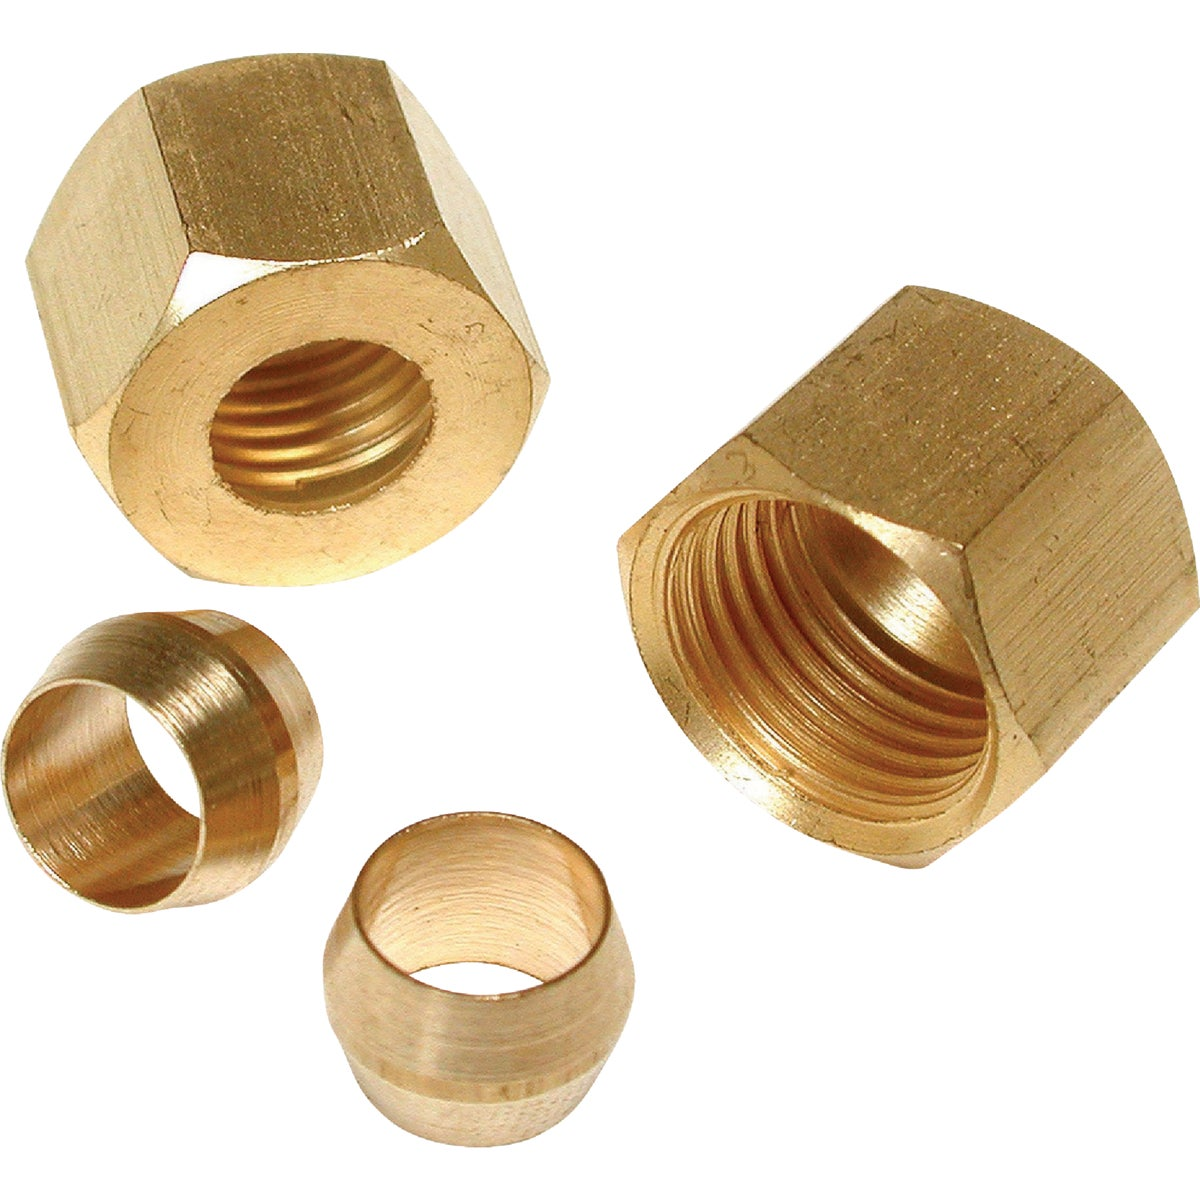 """2PK 1/4"""" COMP SLEEVE&NUT - 93116 by Dial Manufacturing"""